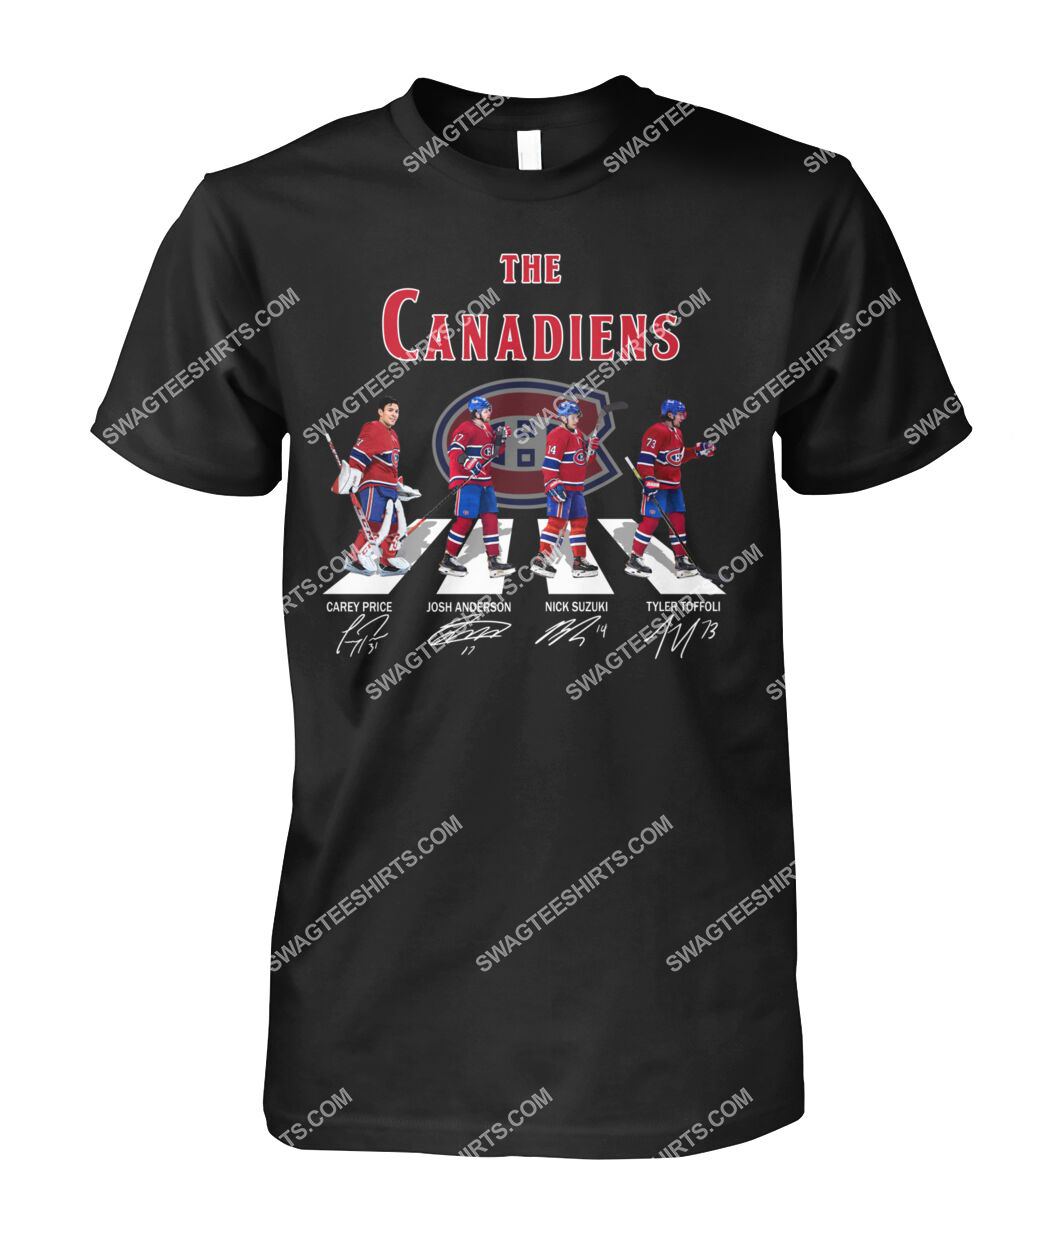 abbey road the montreal canadiens signatures tshirt 1